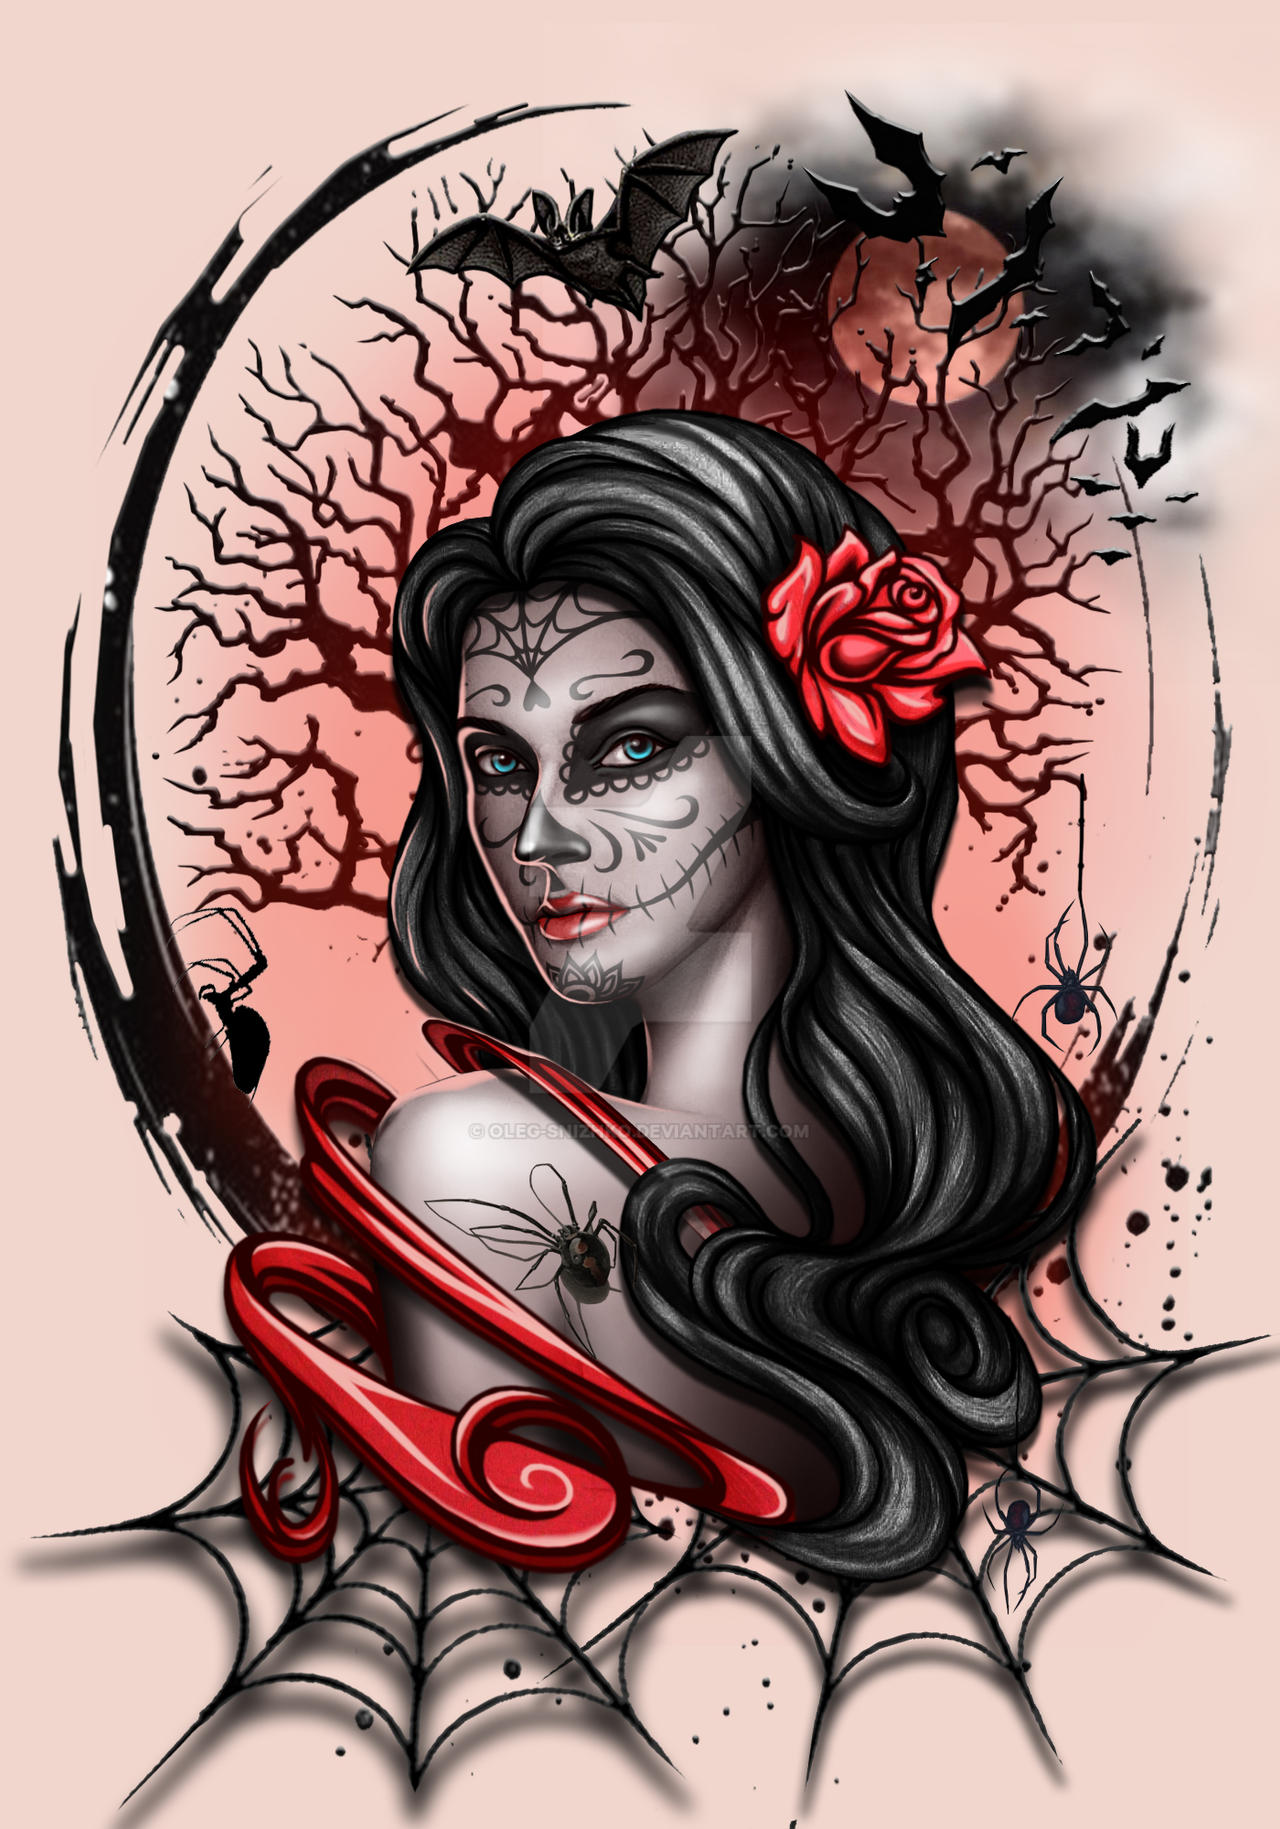 Gothic Design Realism La Catrina Girl By Oleg Snizhko On Deviantart